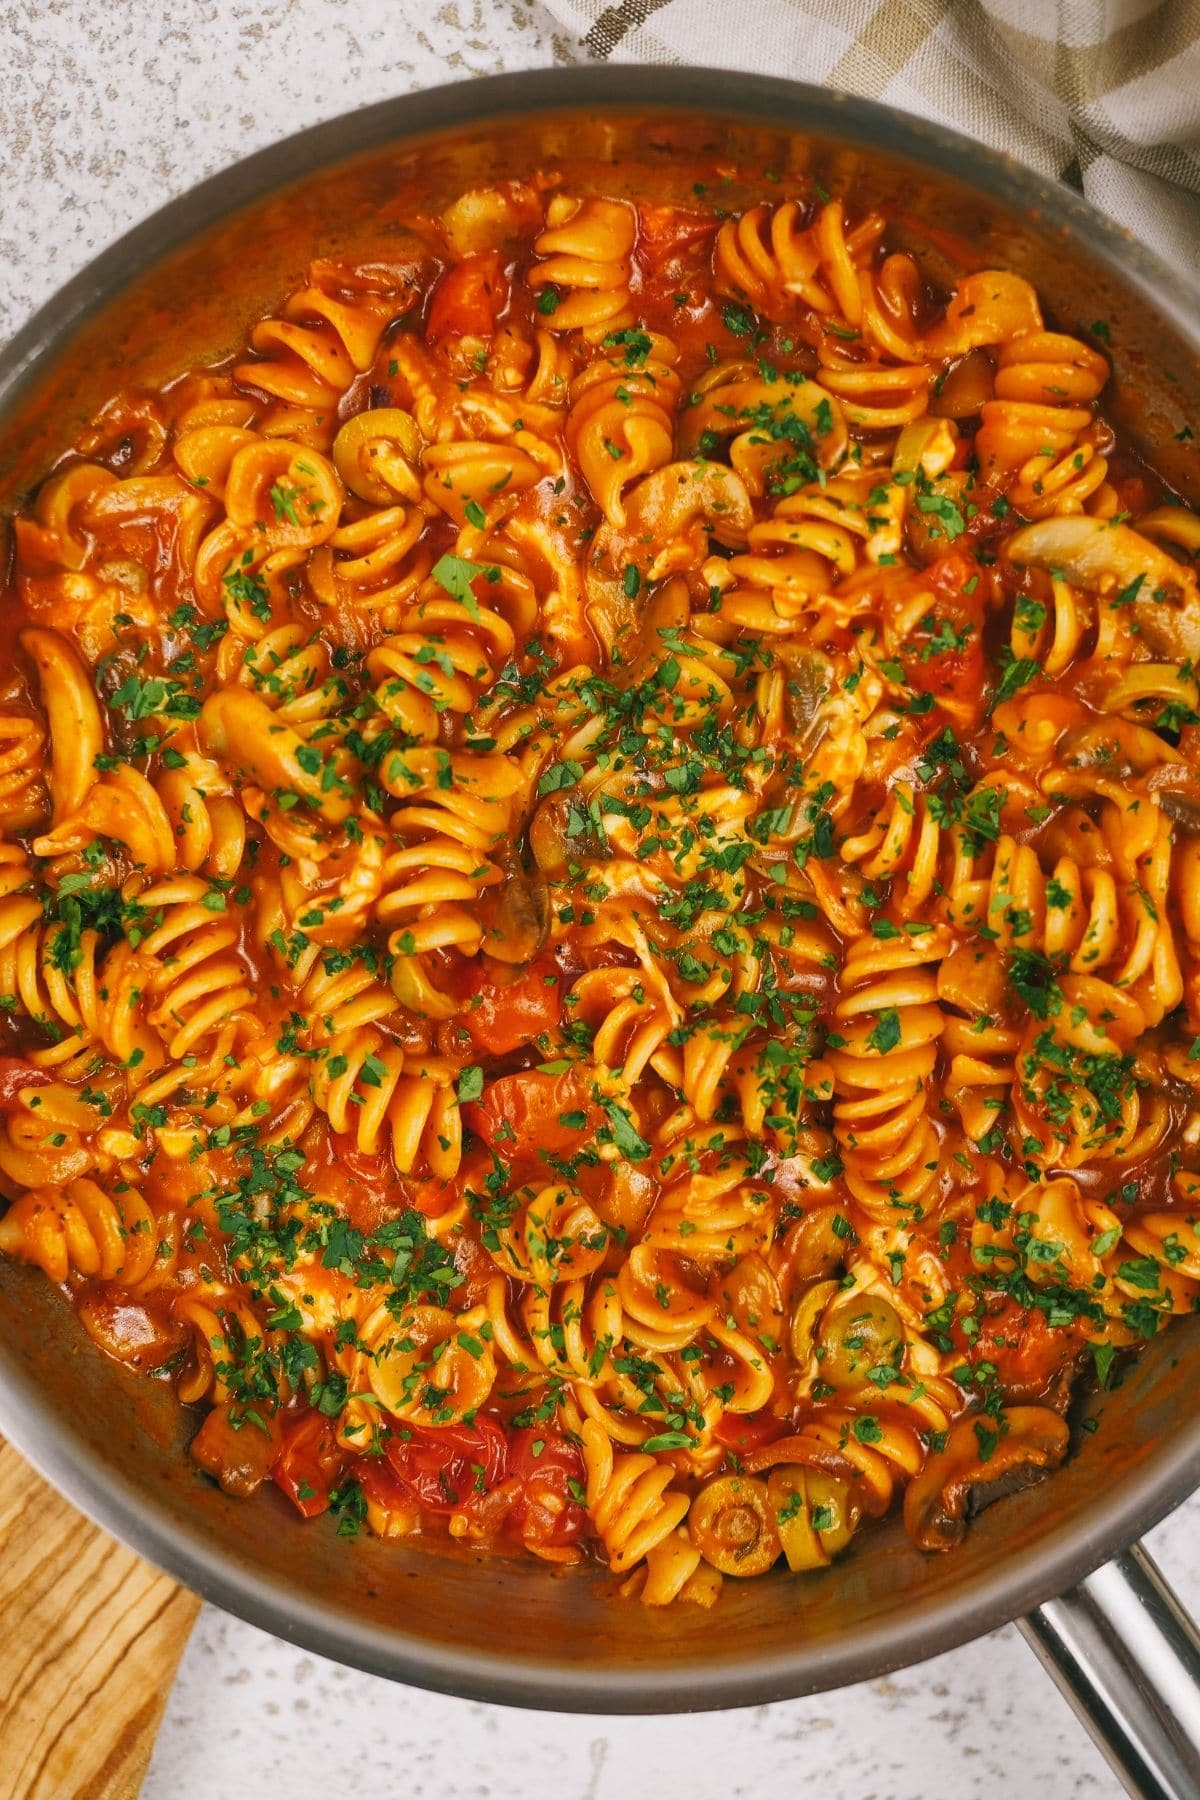 Large skillet of one pot pasta topped with parsley